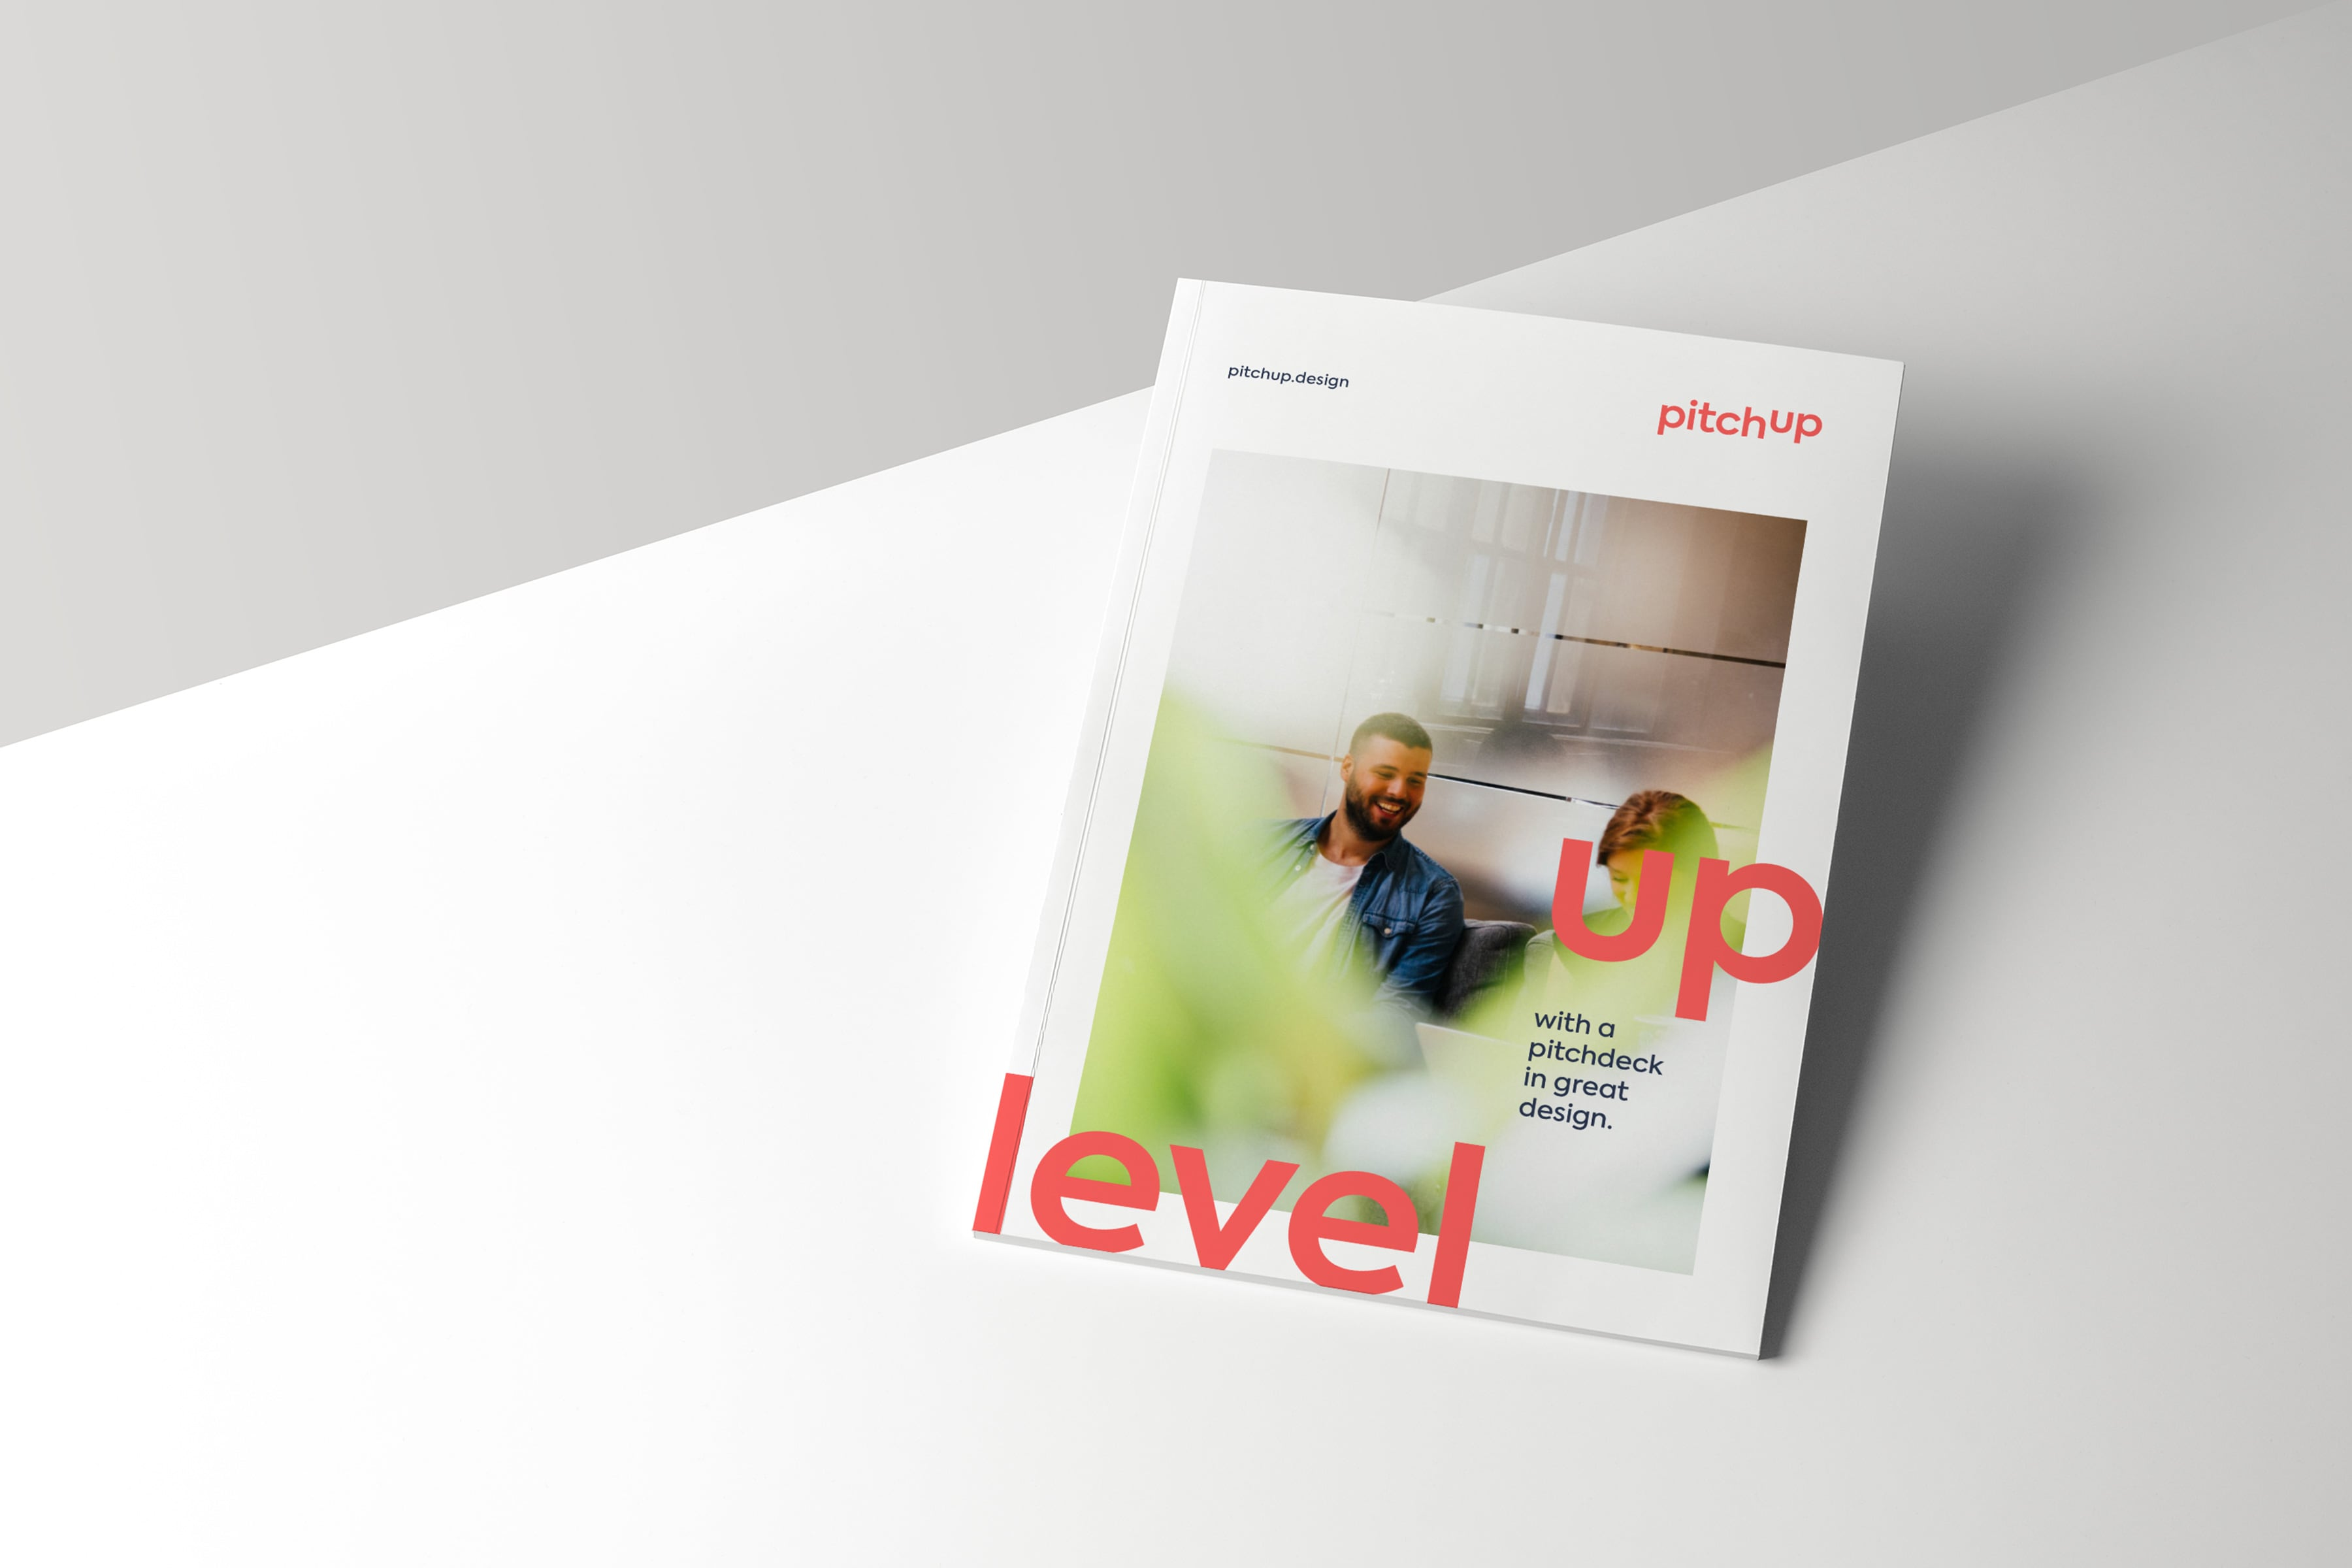 monospace – Design consultancy How to level-up a start-up